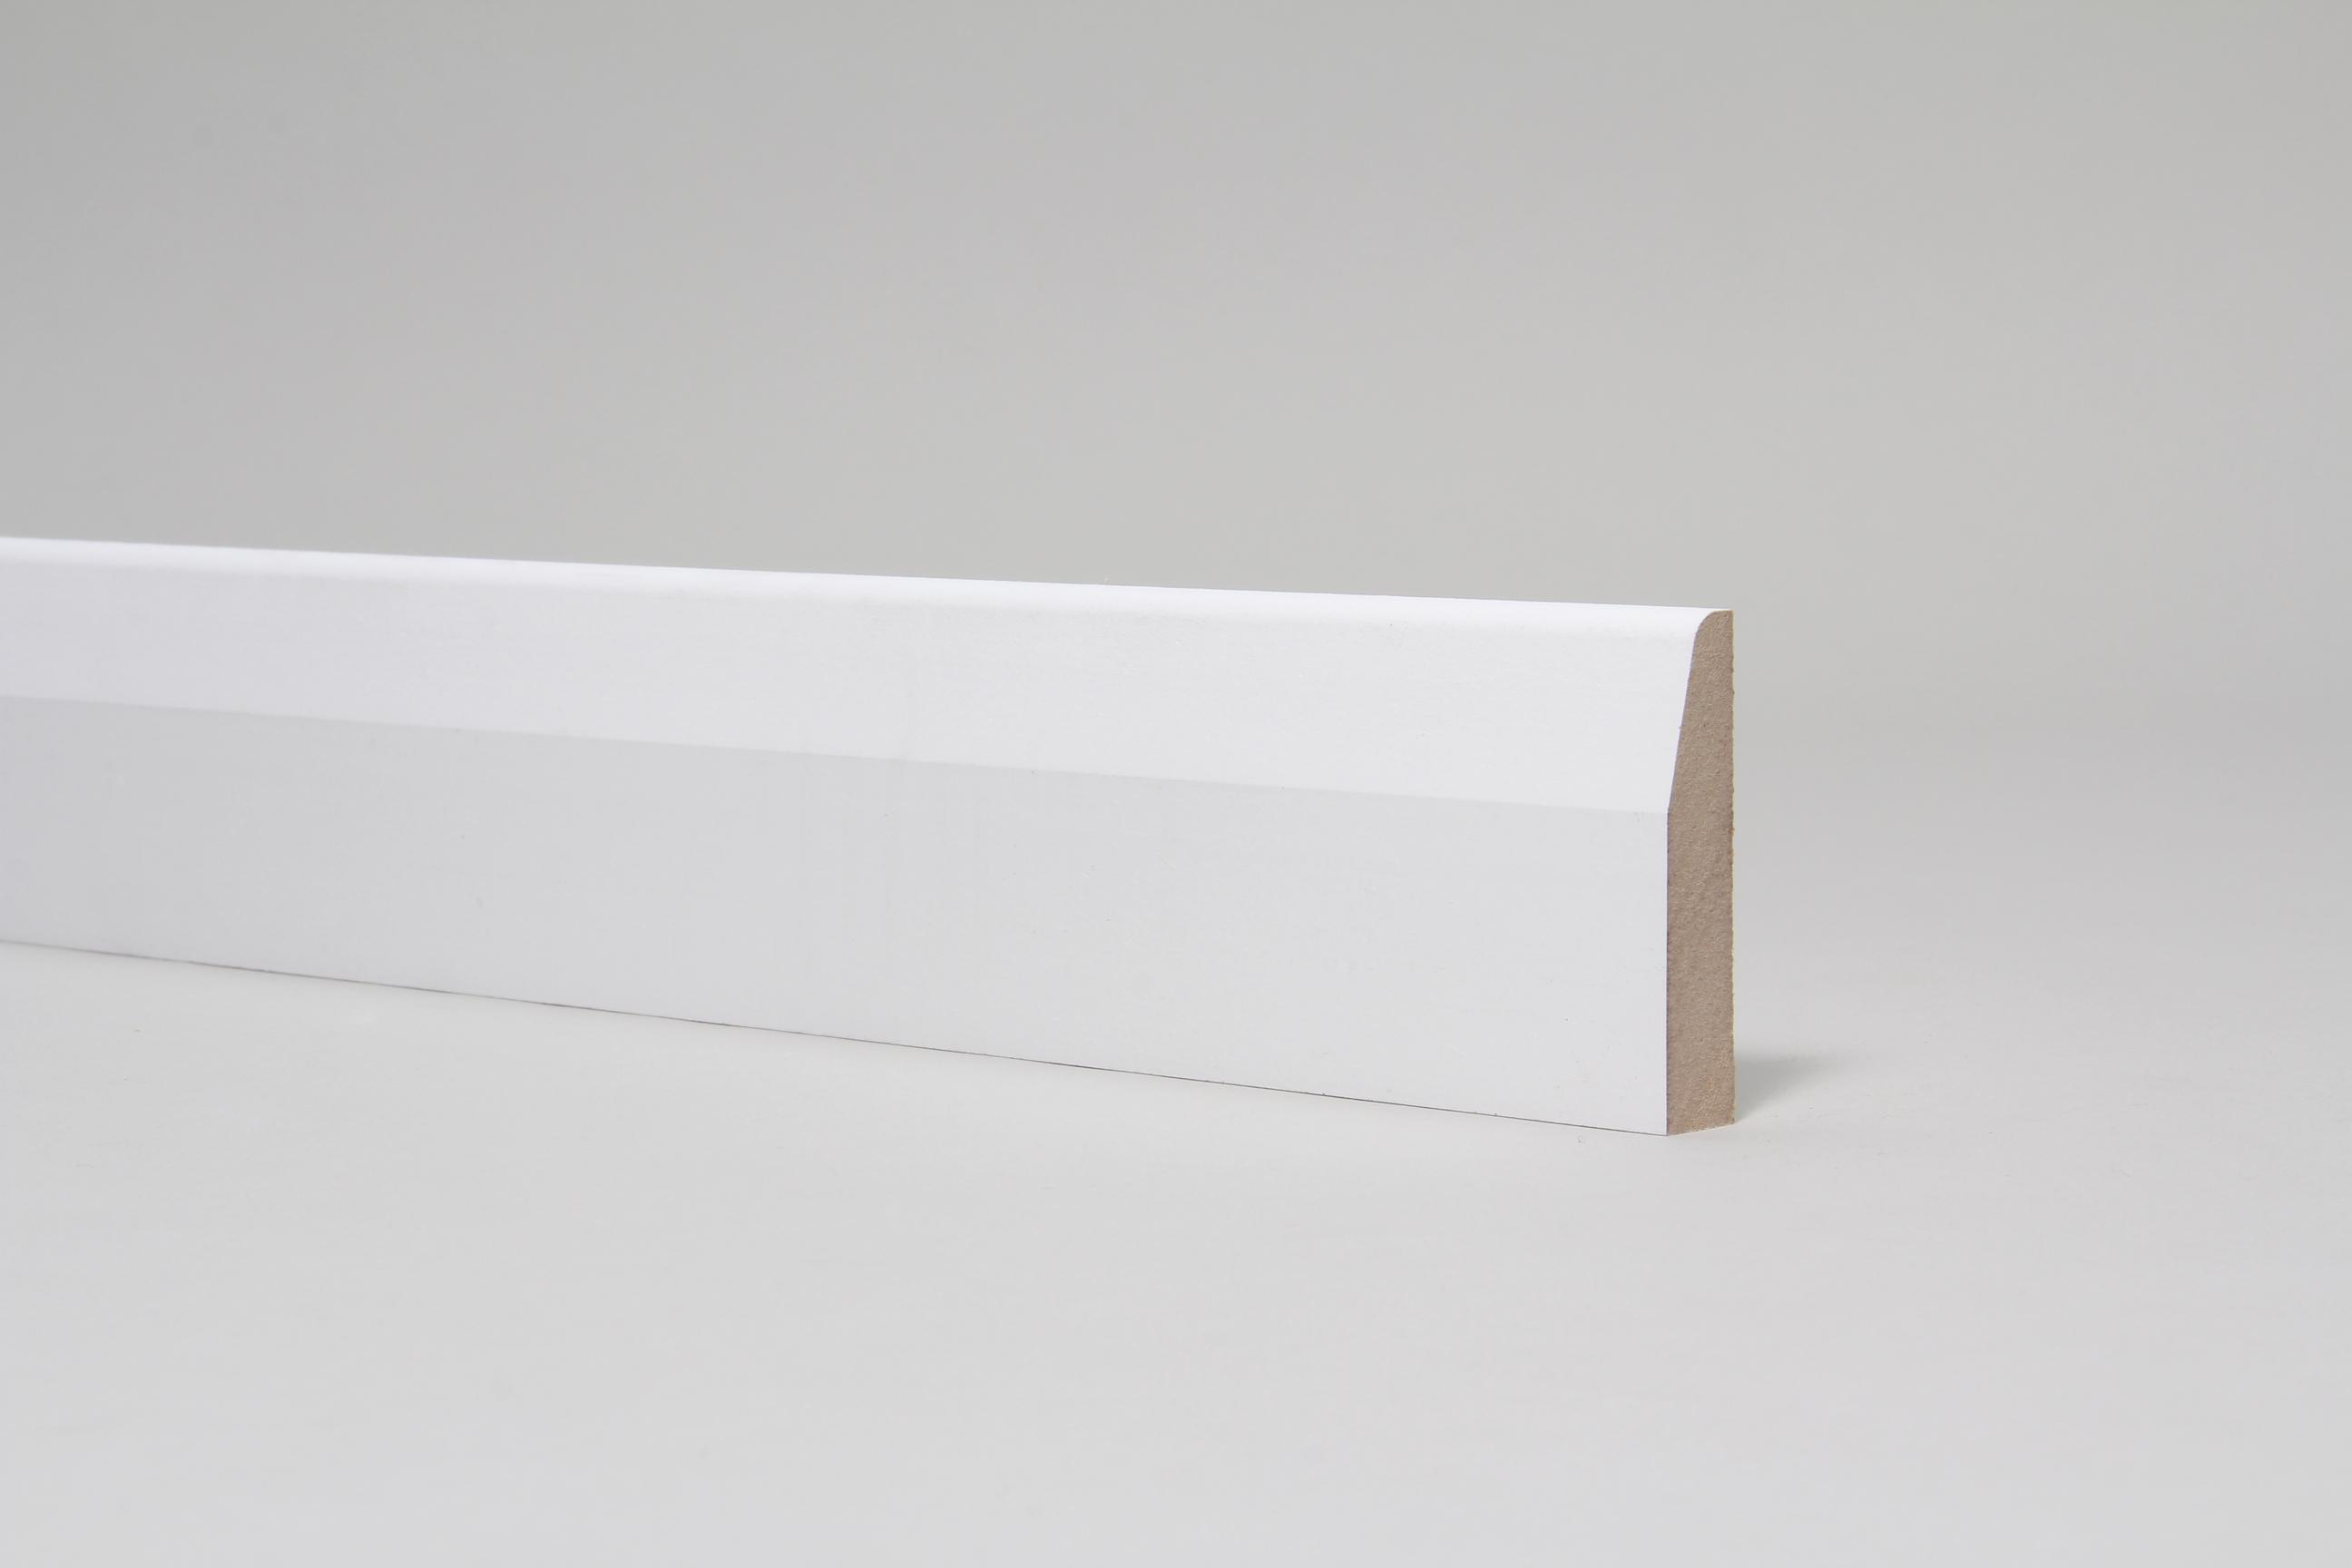 Chamfered & Rounded 15mm x 68mm  x 4.4 Mtr  Primed